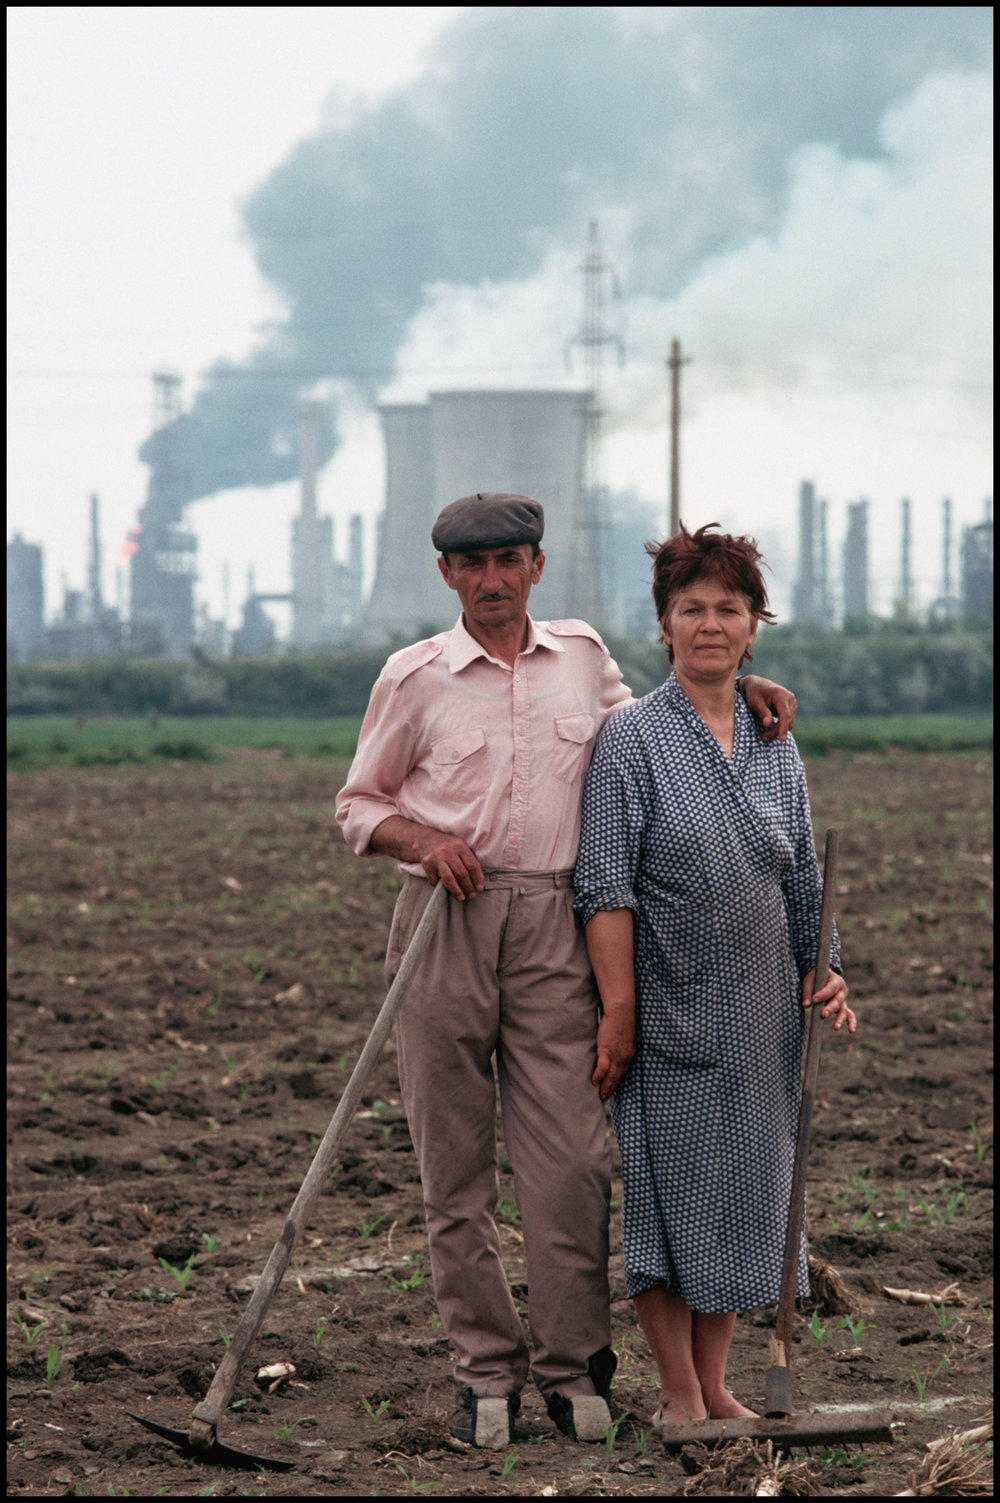 May 1990, Romania --- A portrait of a farming couple in a field outside of Bucharest. A series of factories spewing smoke can be seen in the distance